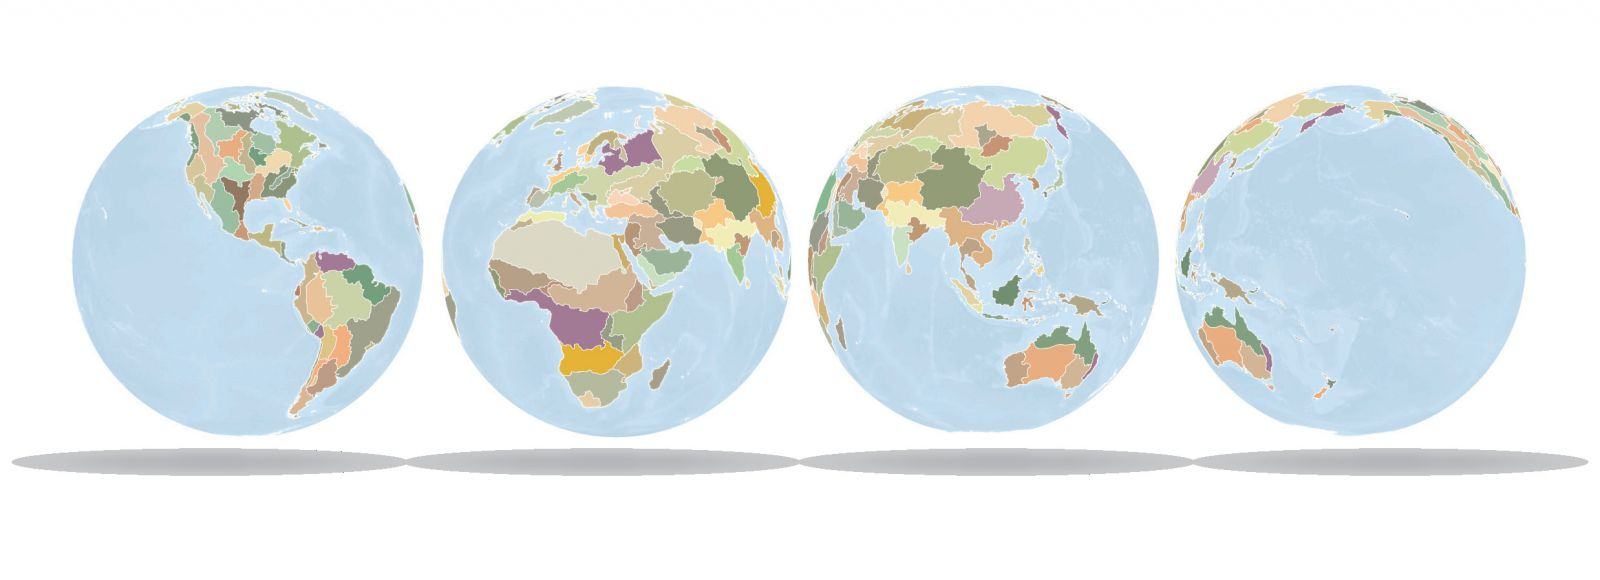 The globe mapped by new regions built around cultural and environmental similarities.